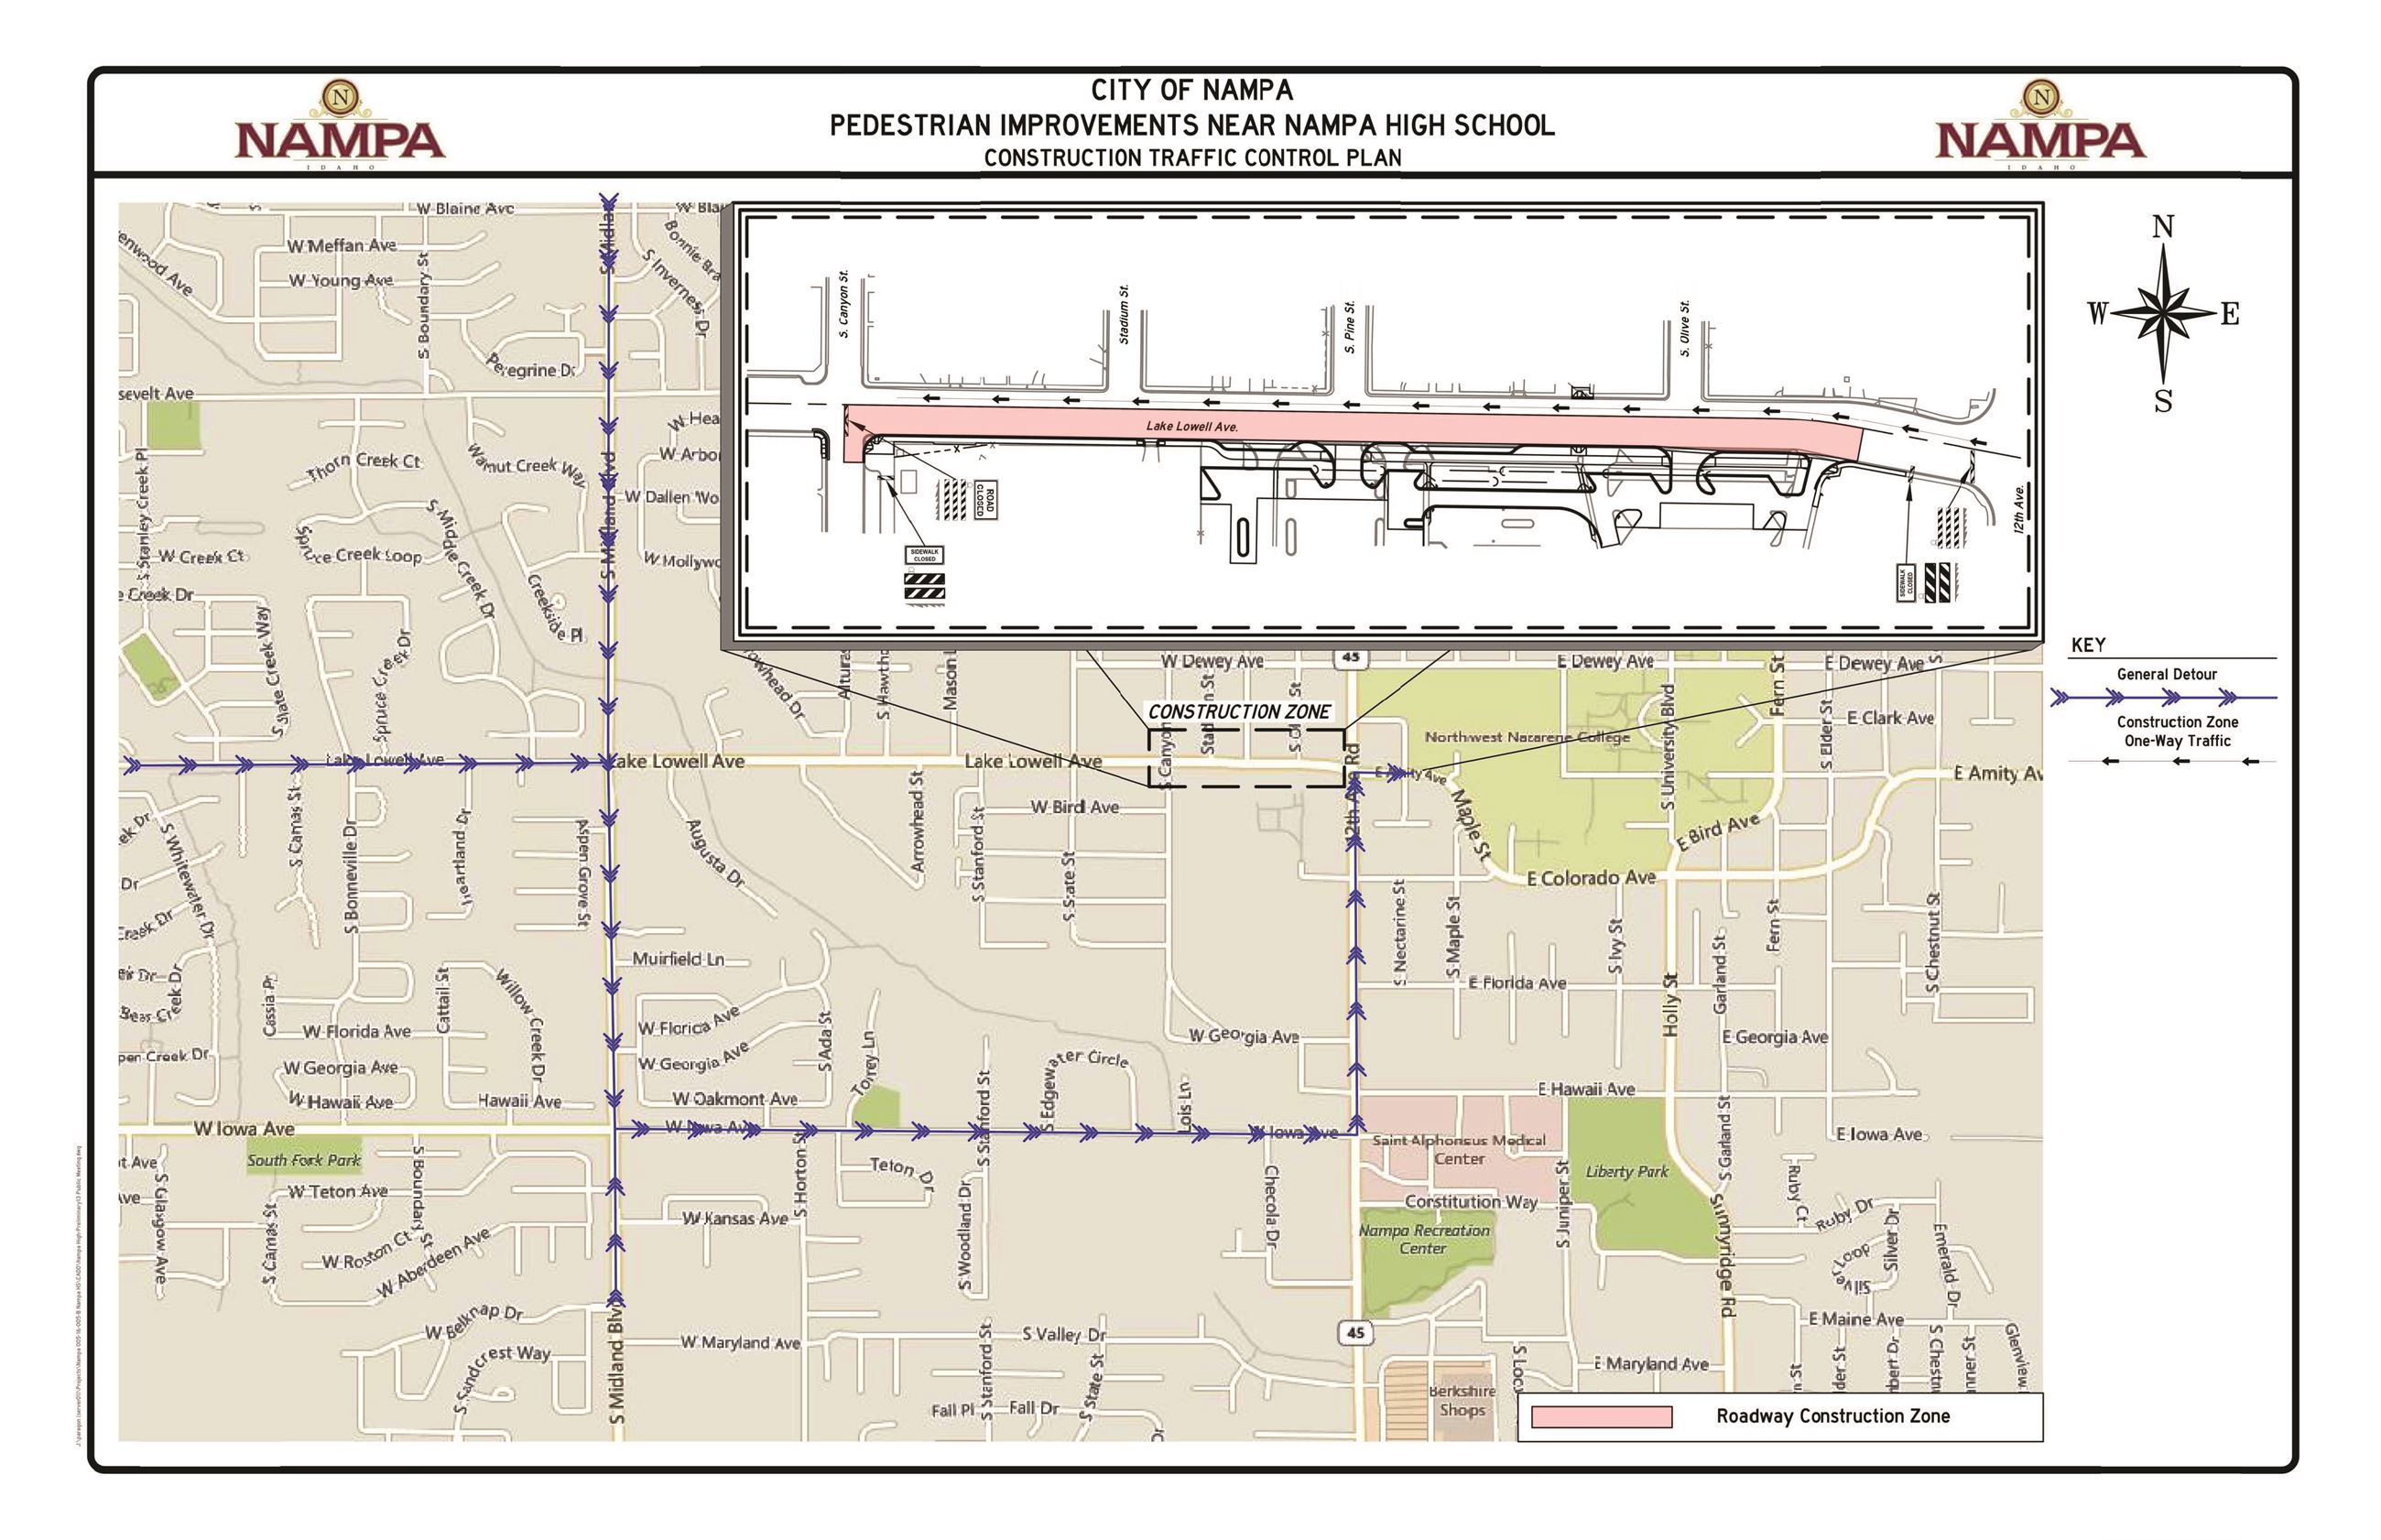 Nampa High Construction Traffic Control Plan